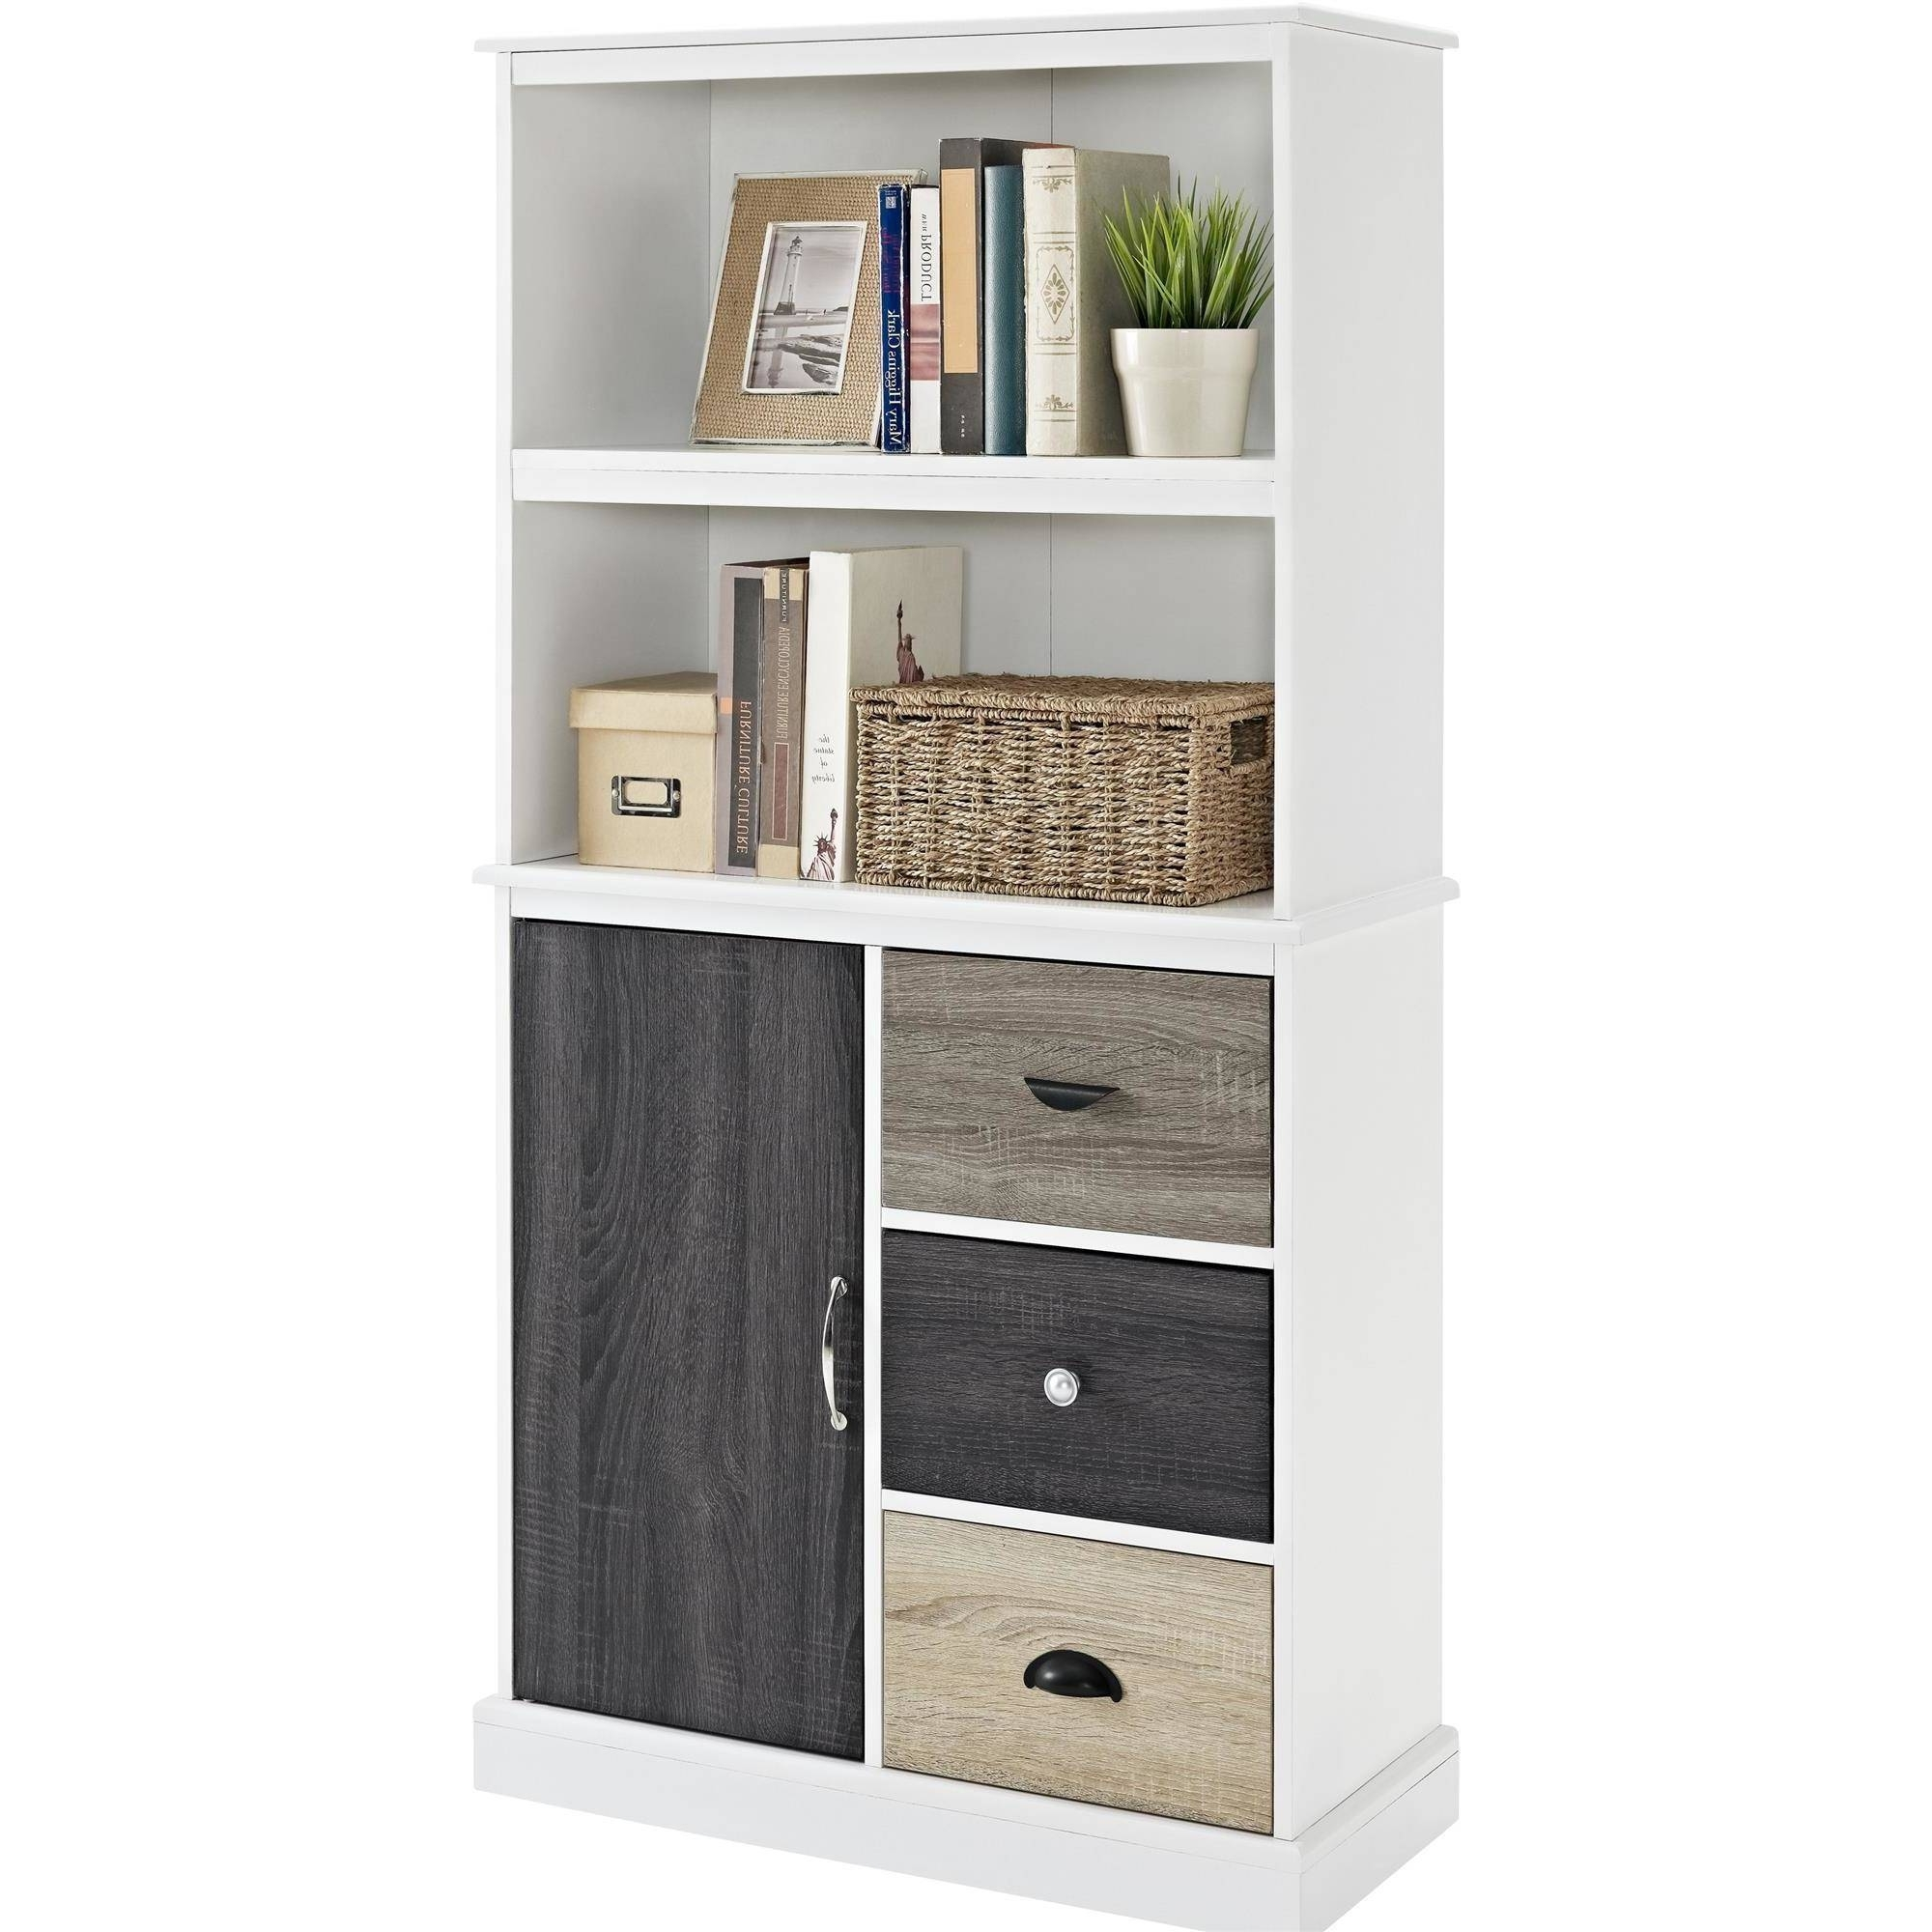 Most Popular Storage Bookcases With Regard To Ameriwood Home Mercer Storage Bookcase With Multicolored Door And (View 7 of 15)